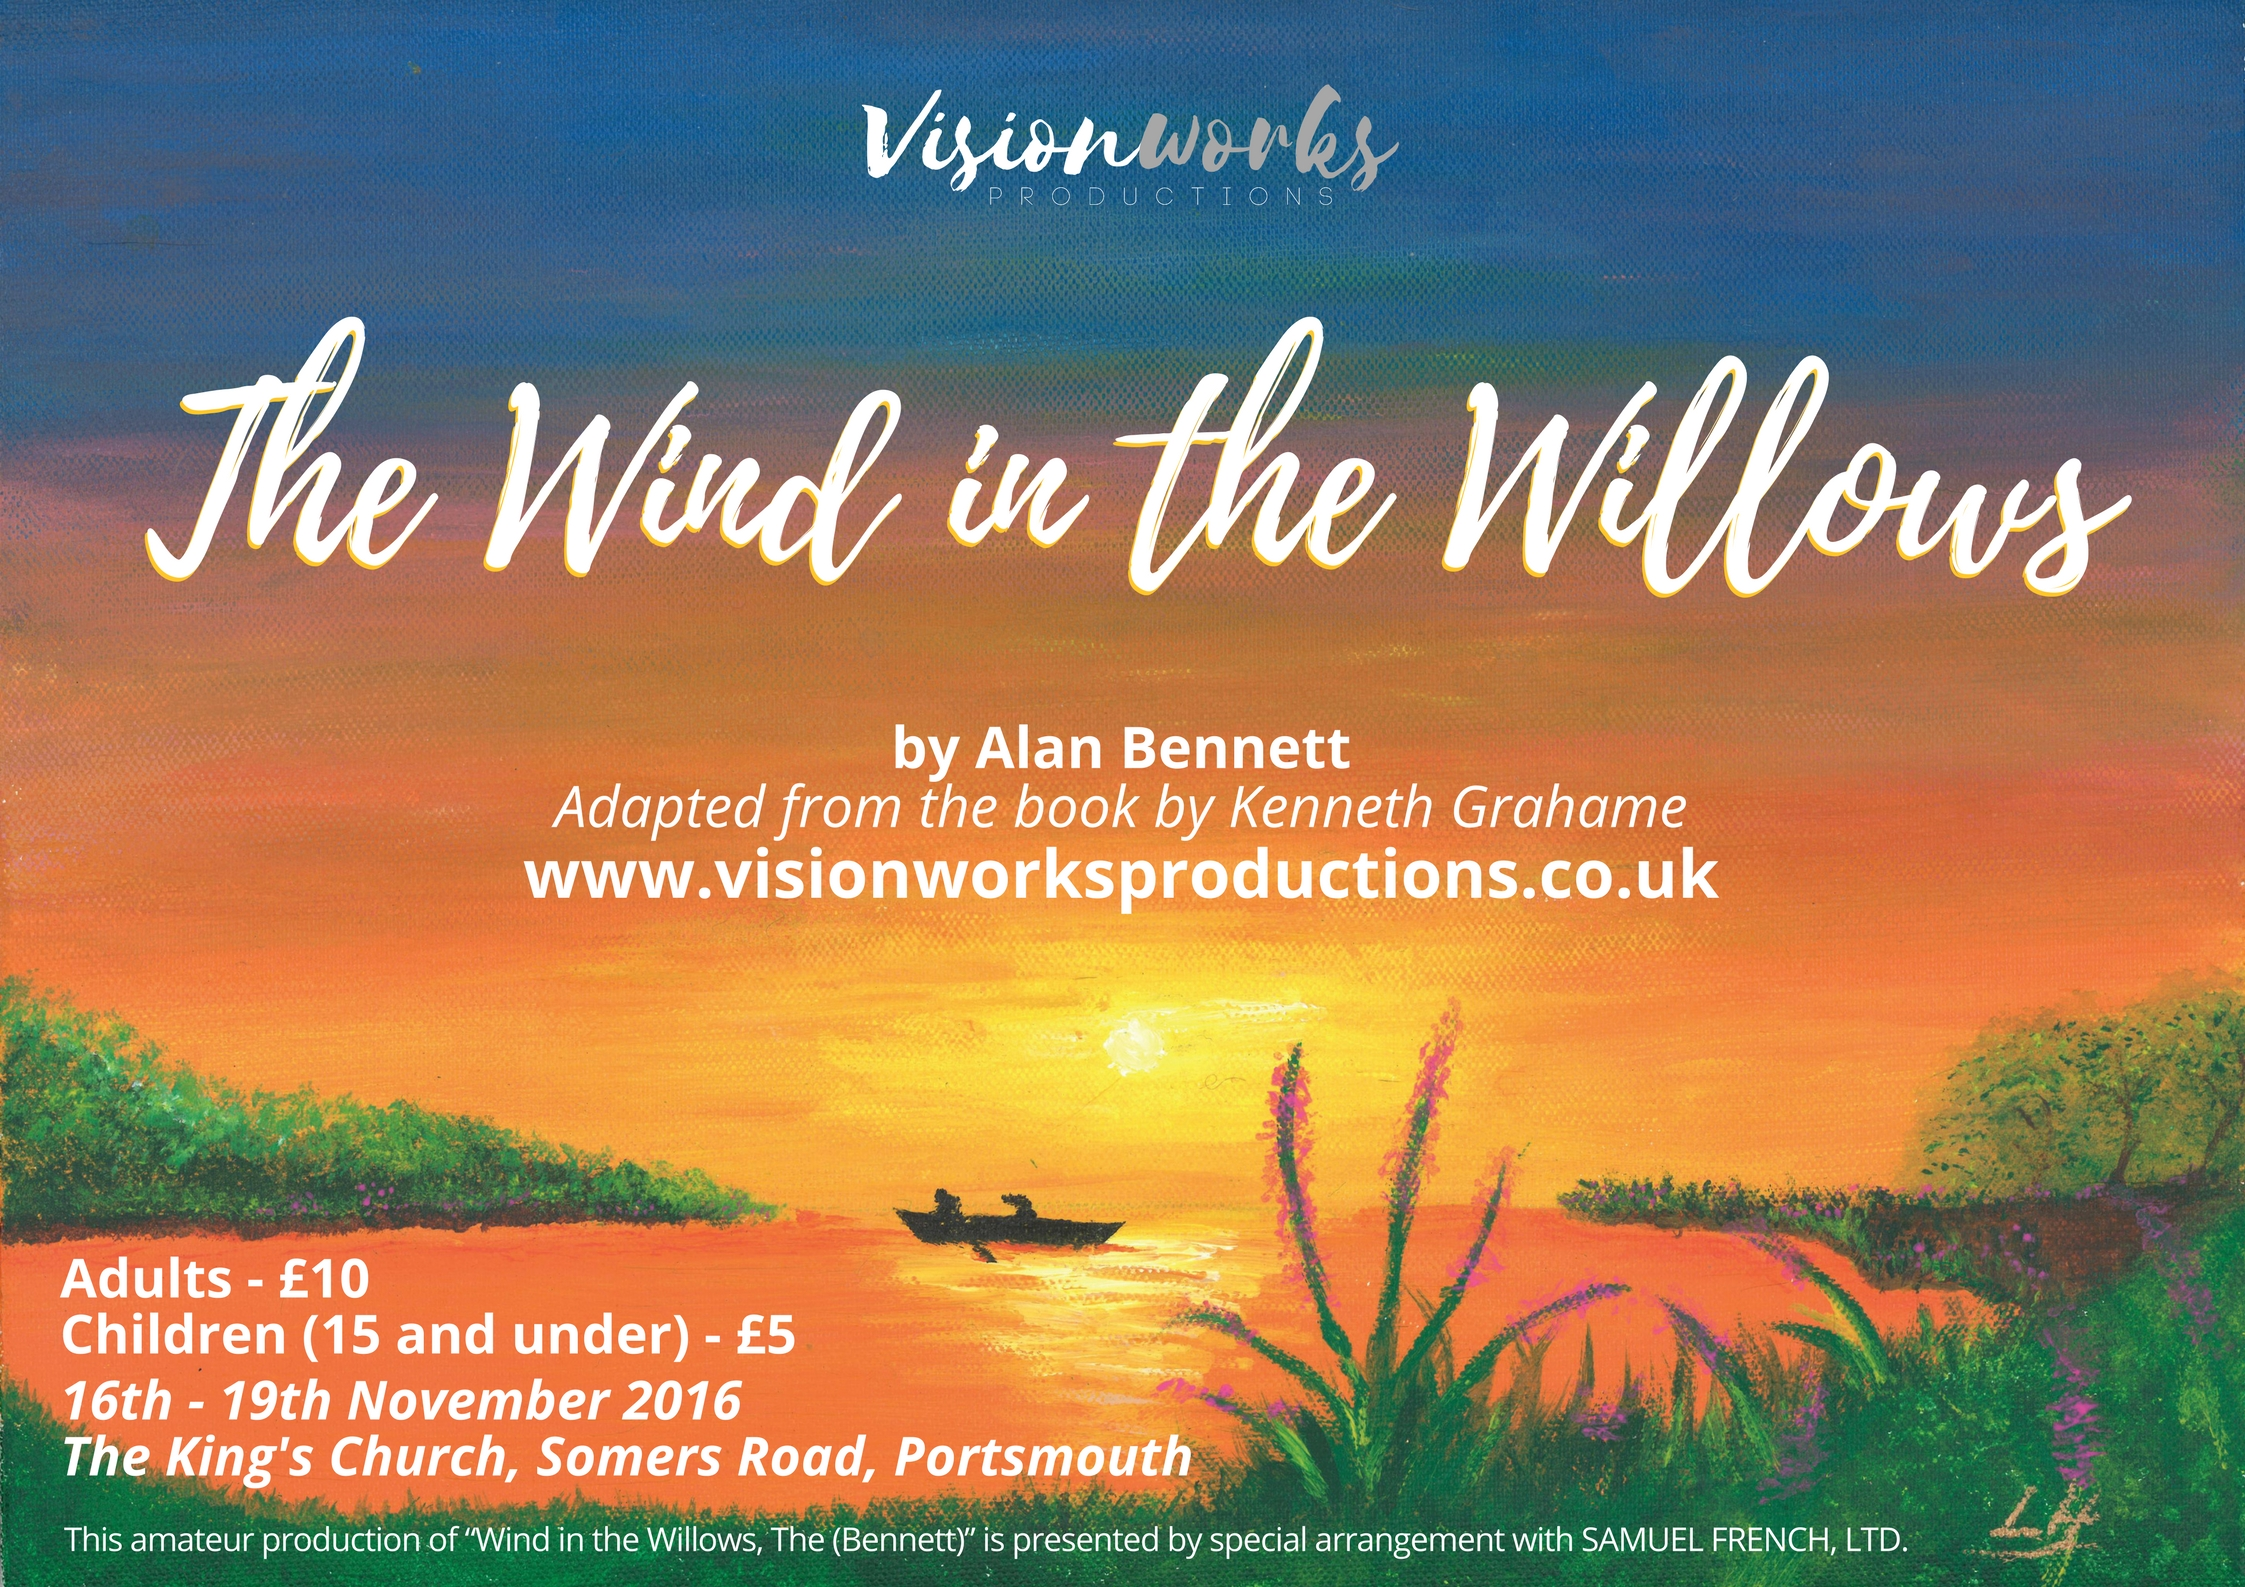 Visionworks Productions The Wind in the Willow Portsmouth